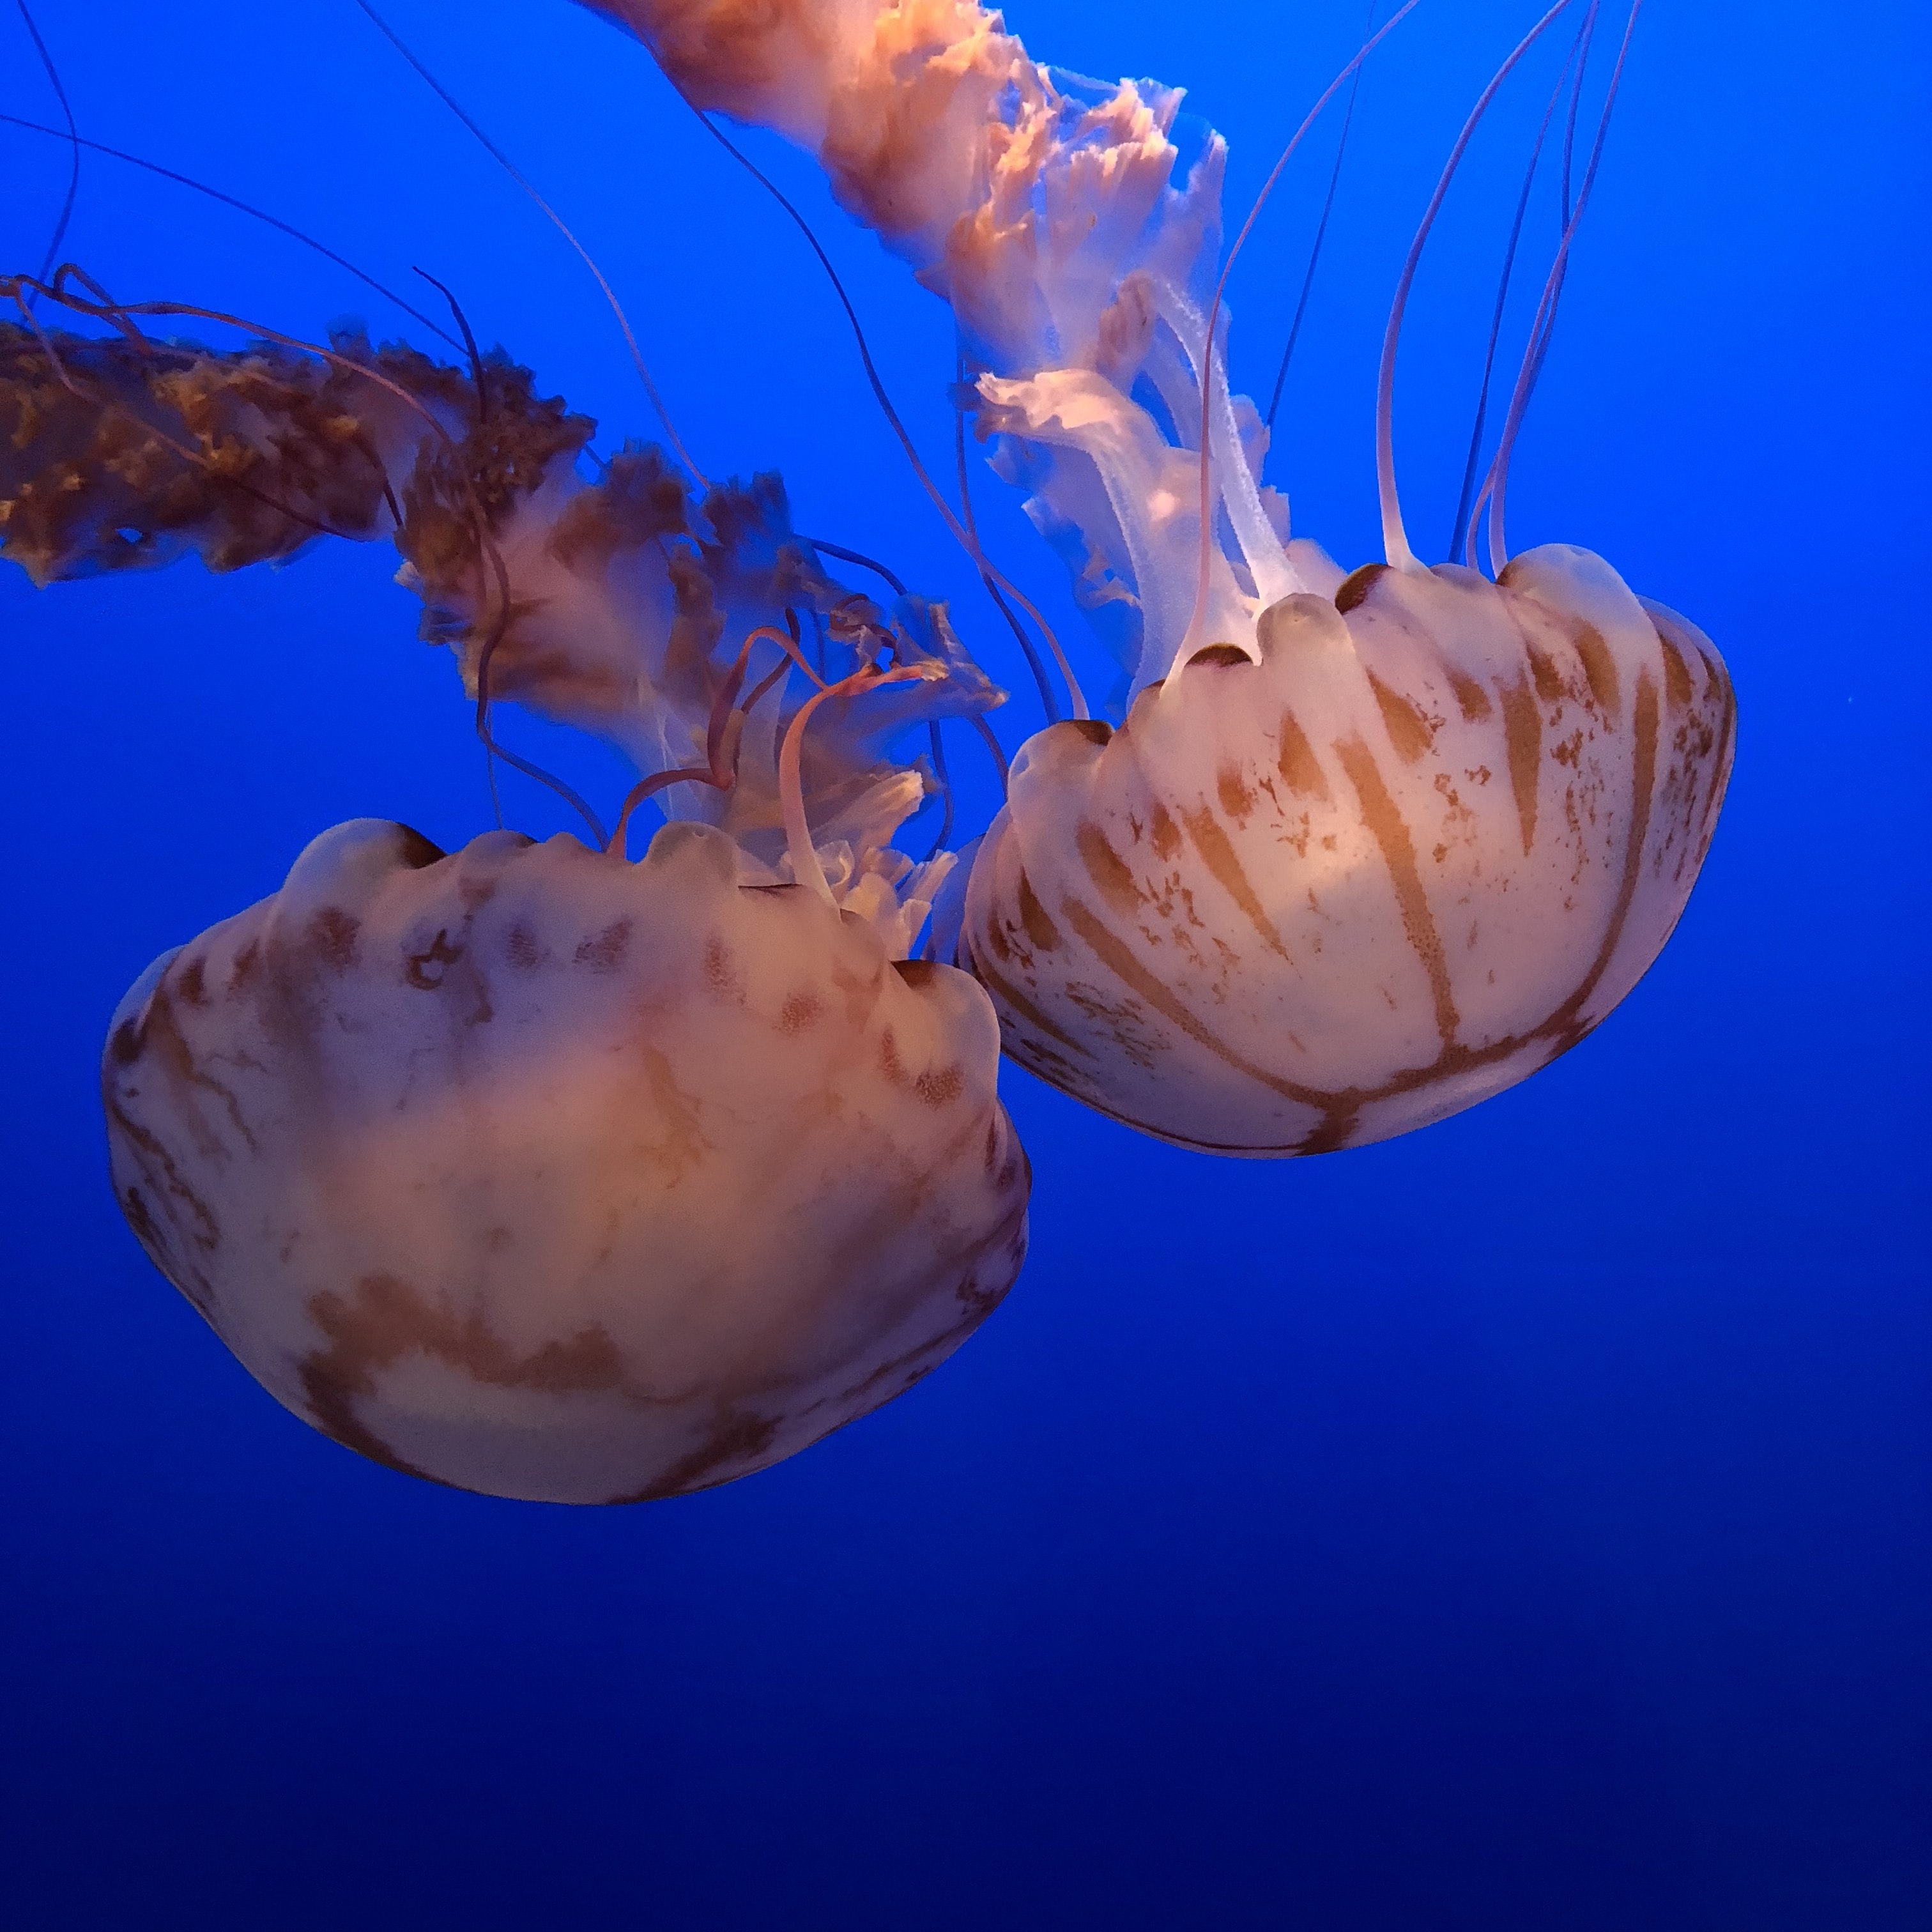 two white and brown jellyfishes